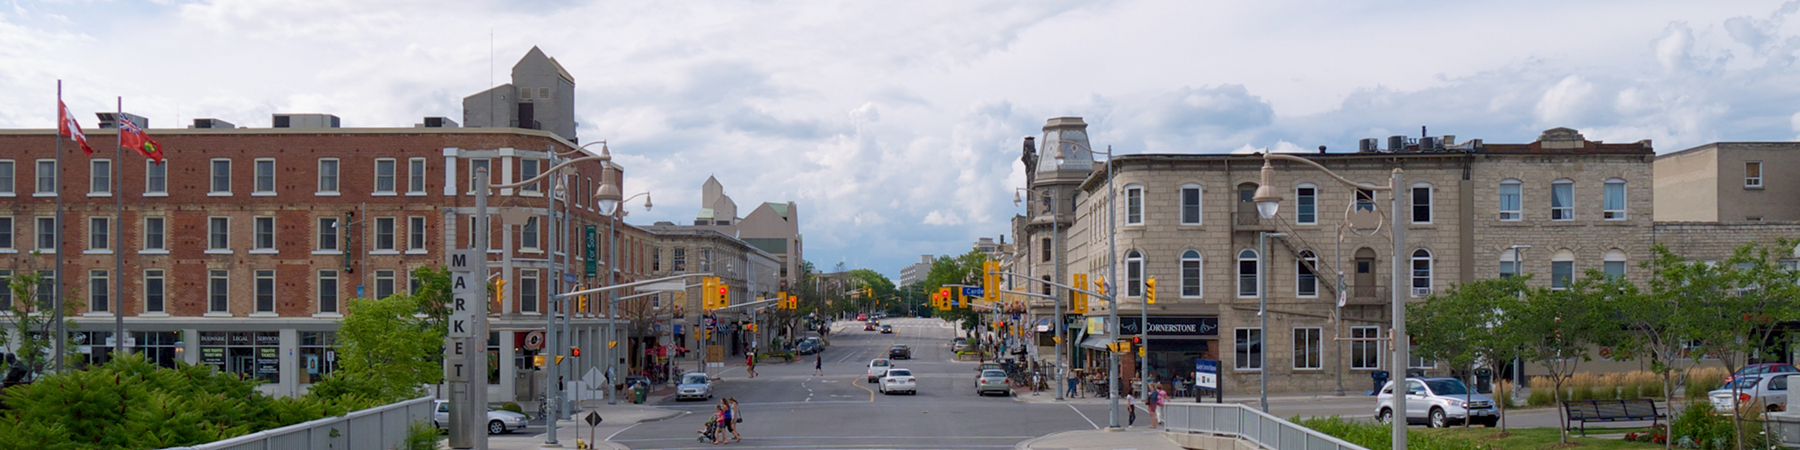 our seo online marketing location downtown guelph